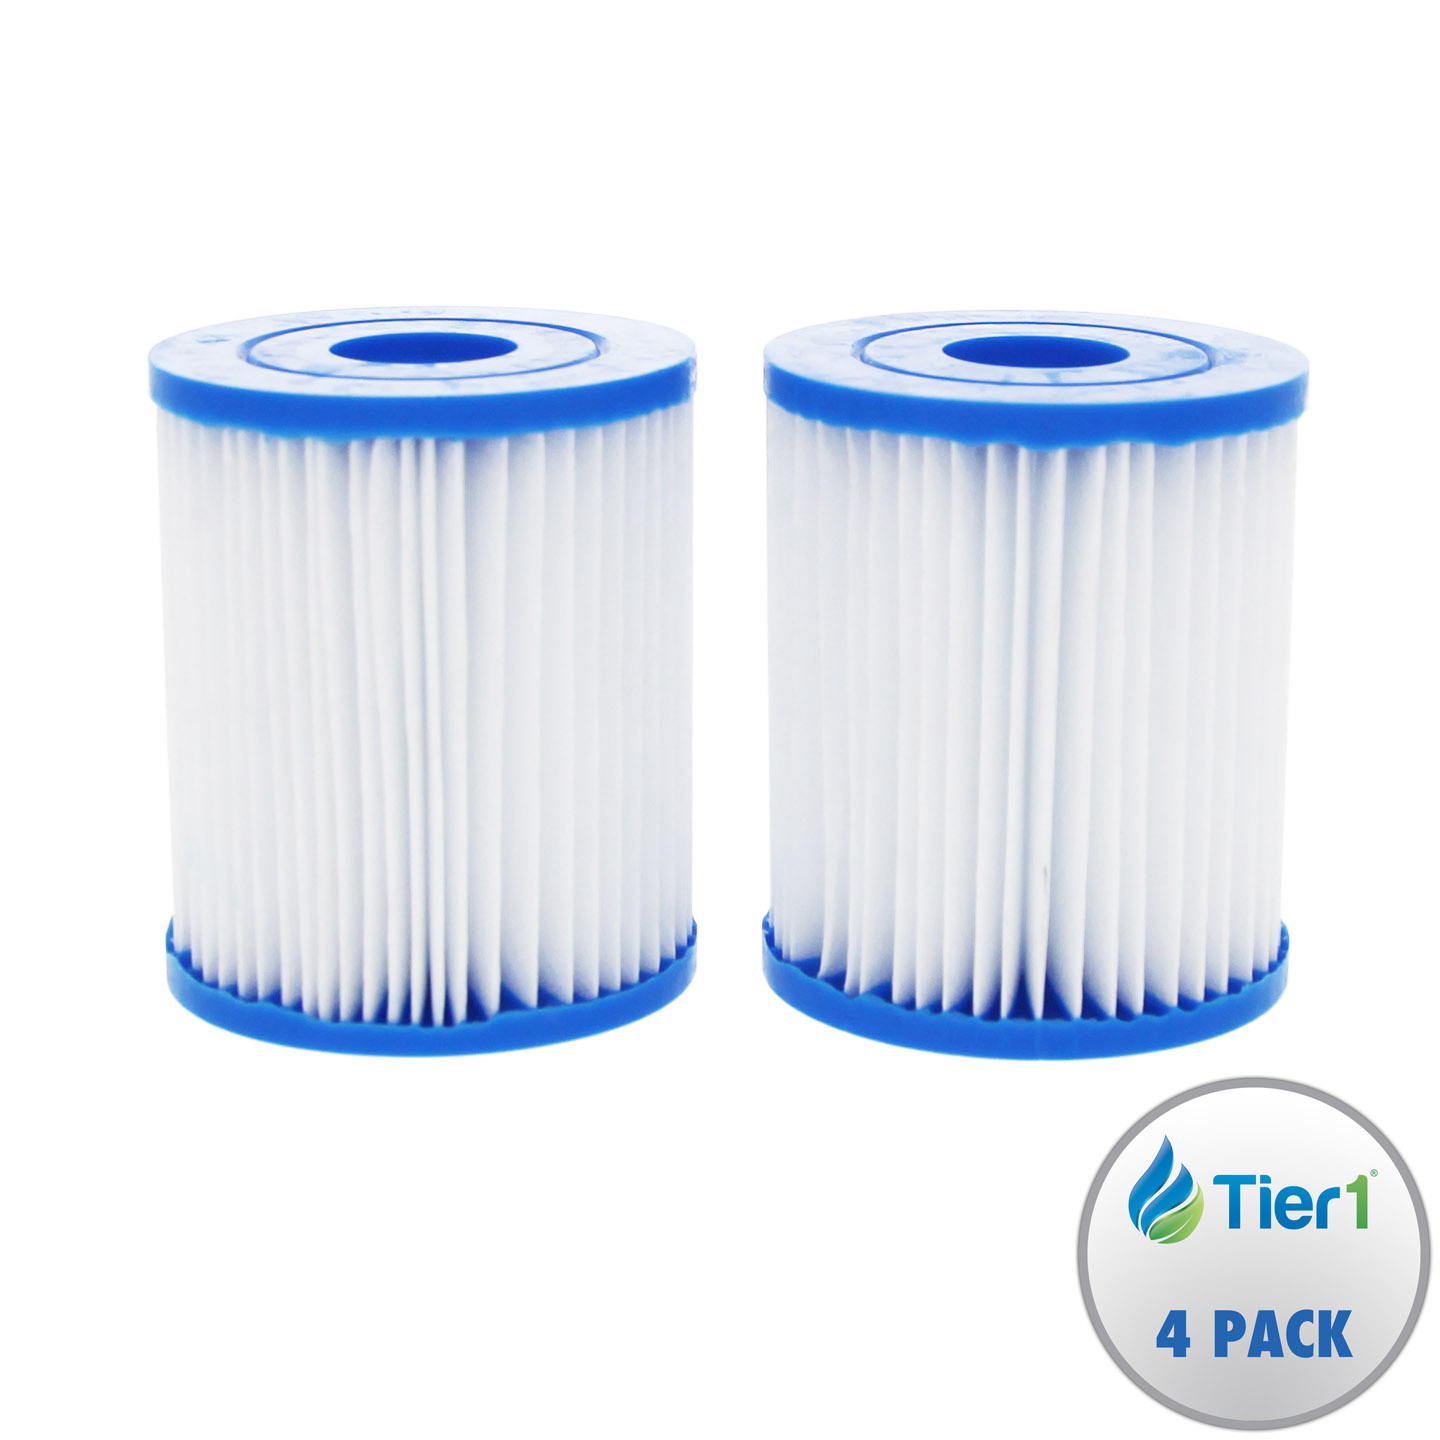 Tier1 Replacement for E Intex E Pool and Spa Filter Cartridge 4 Pack